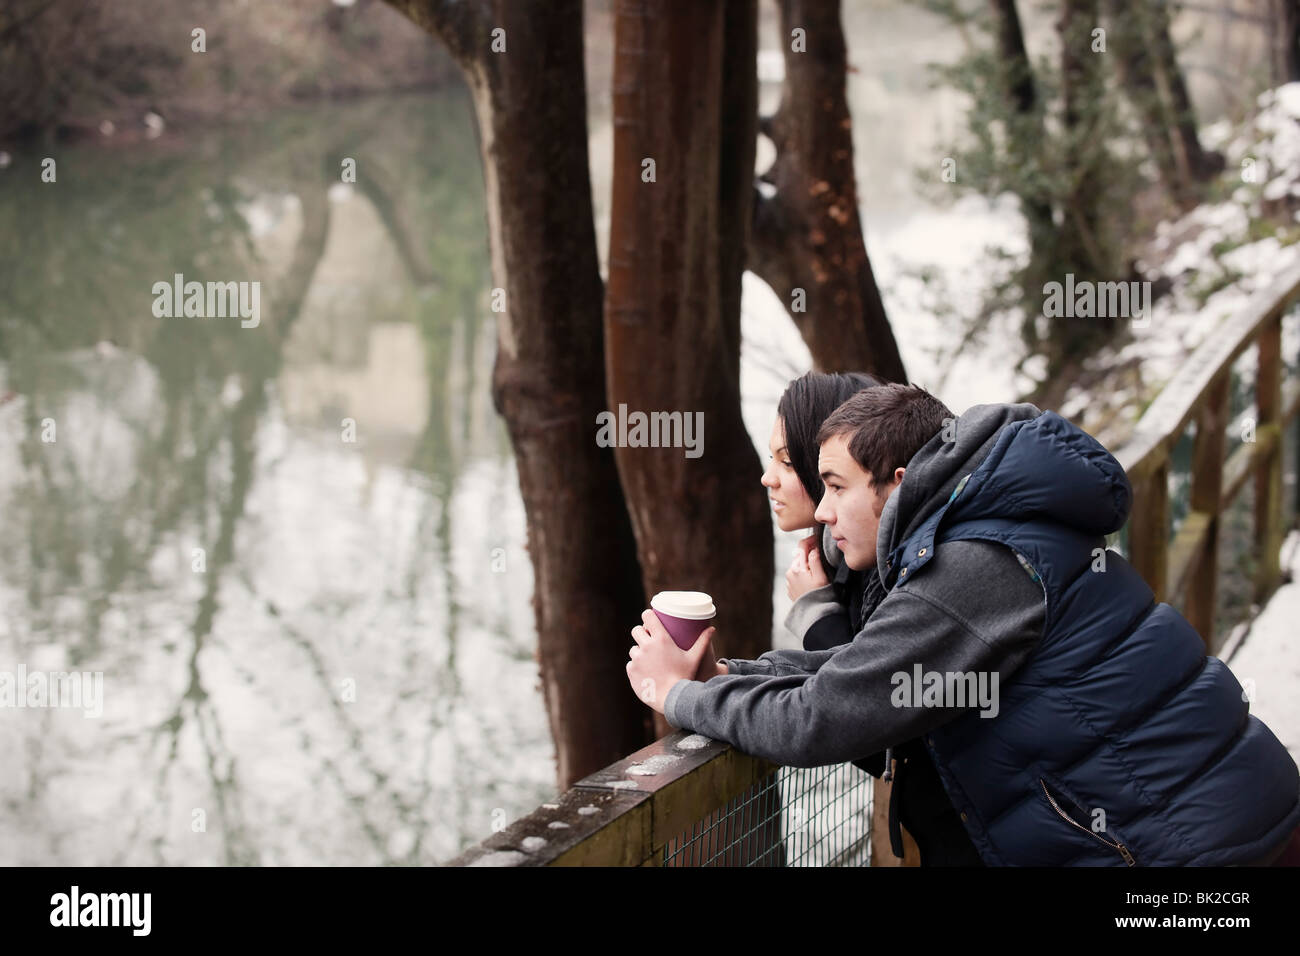 Couple relaxing by river in winter - Stock Image